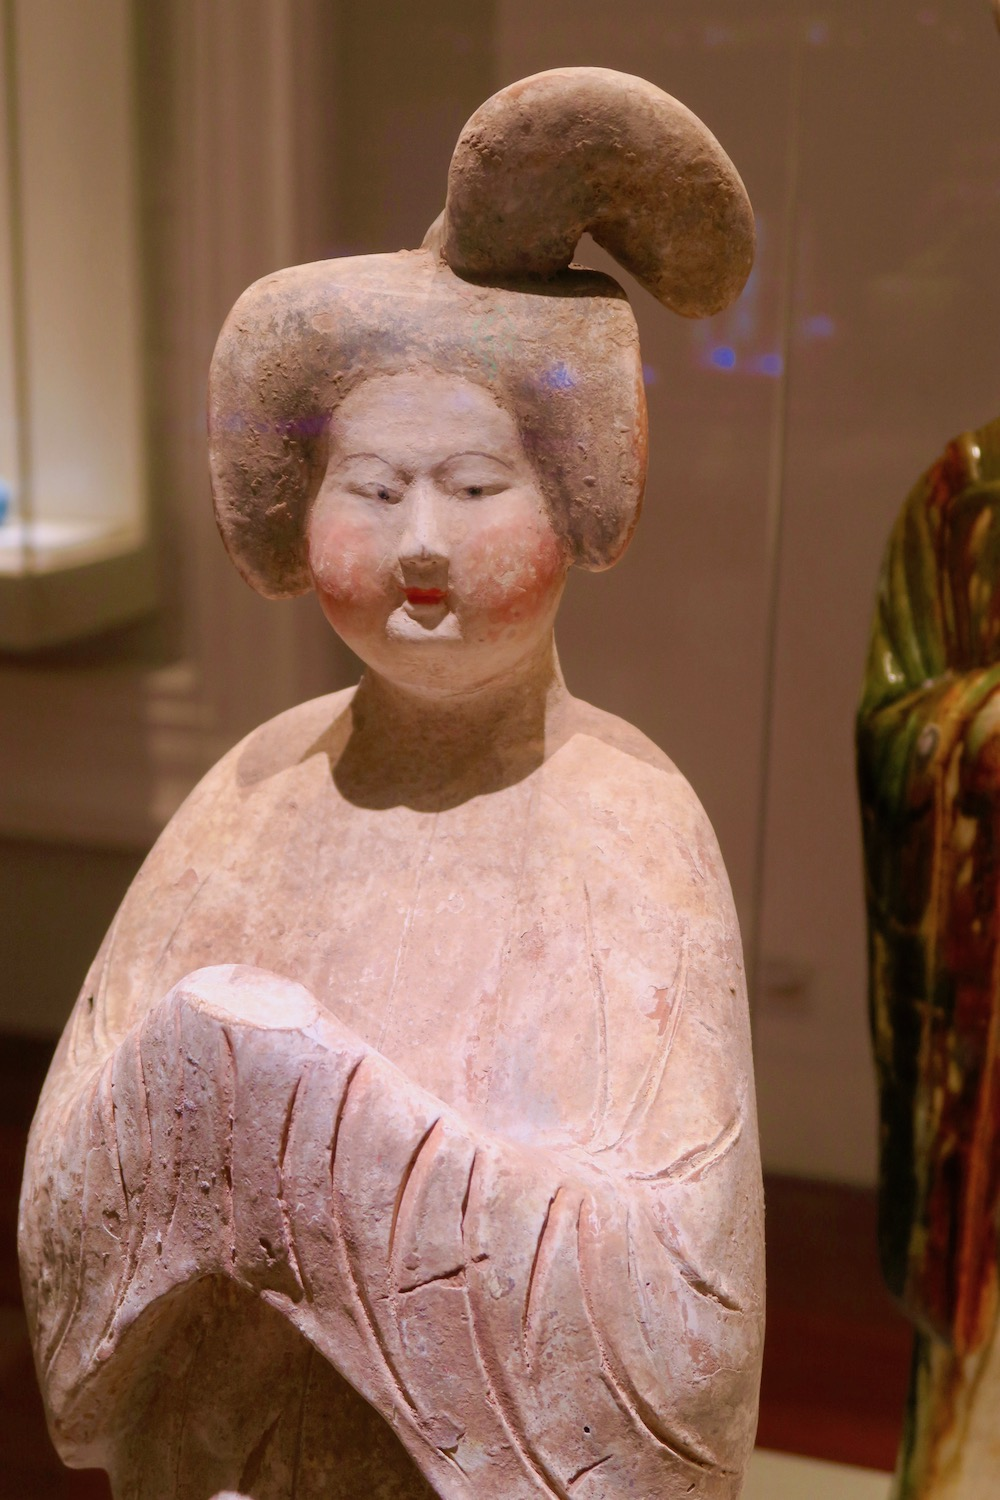 Chinese sculpture at ACM Singapore |curlytraveller.com